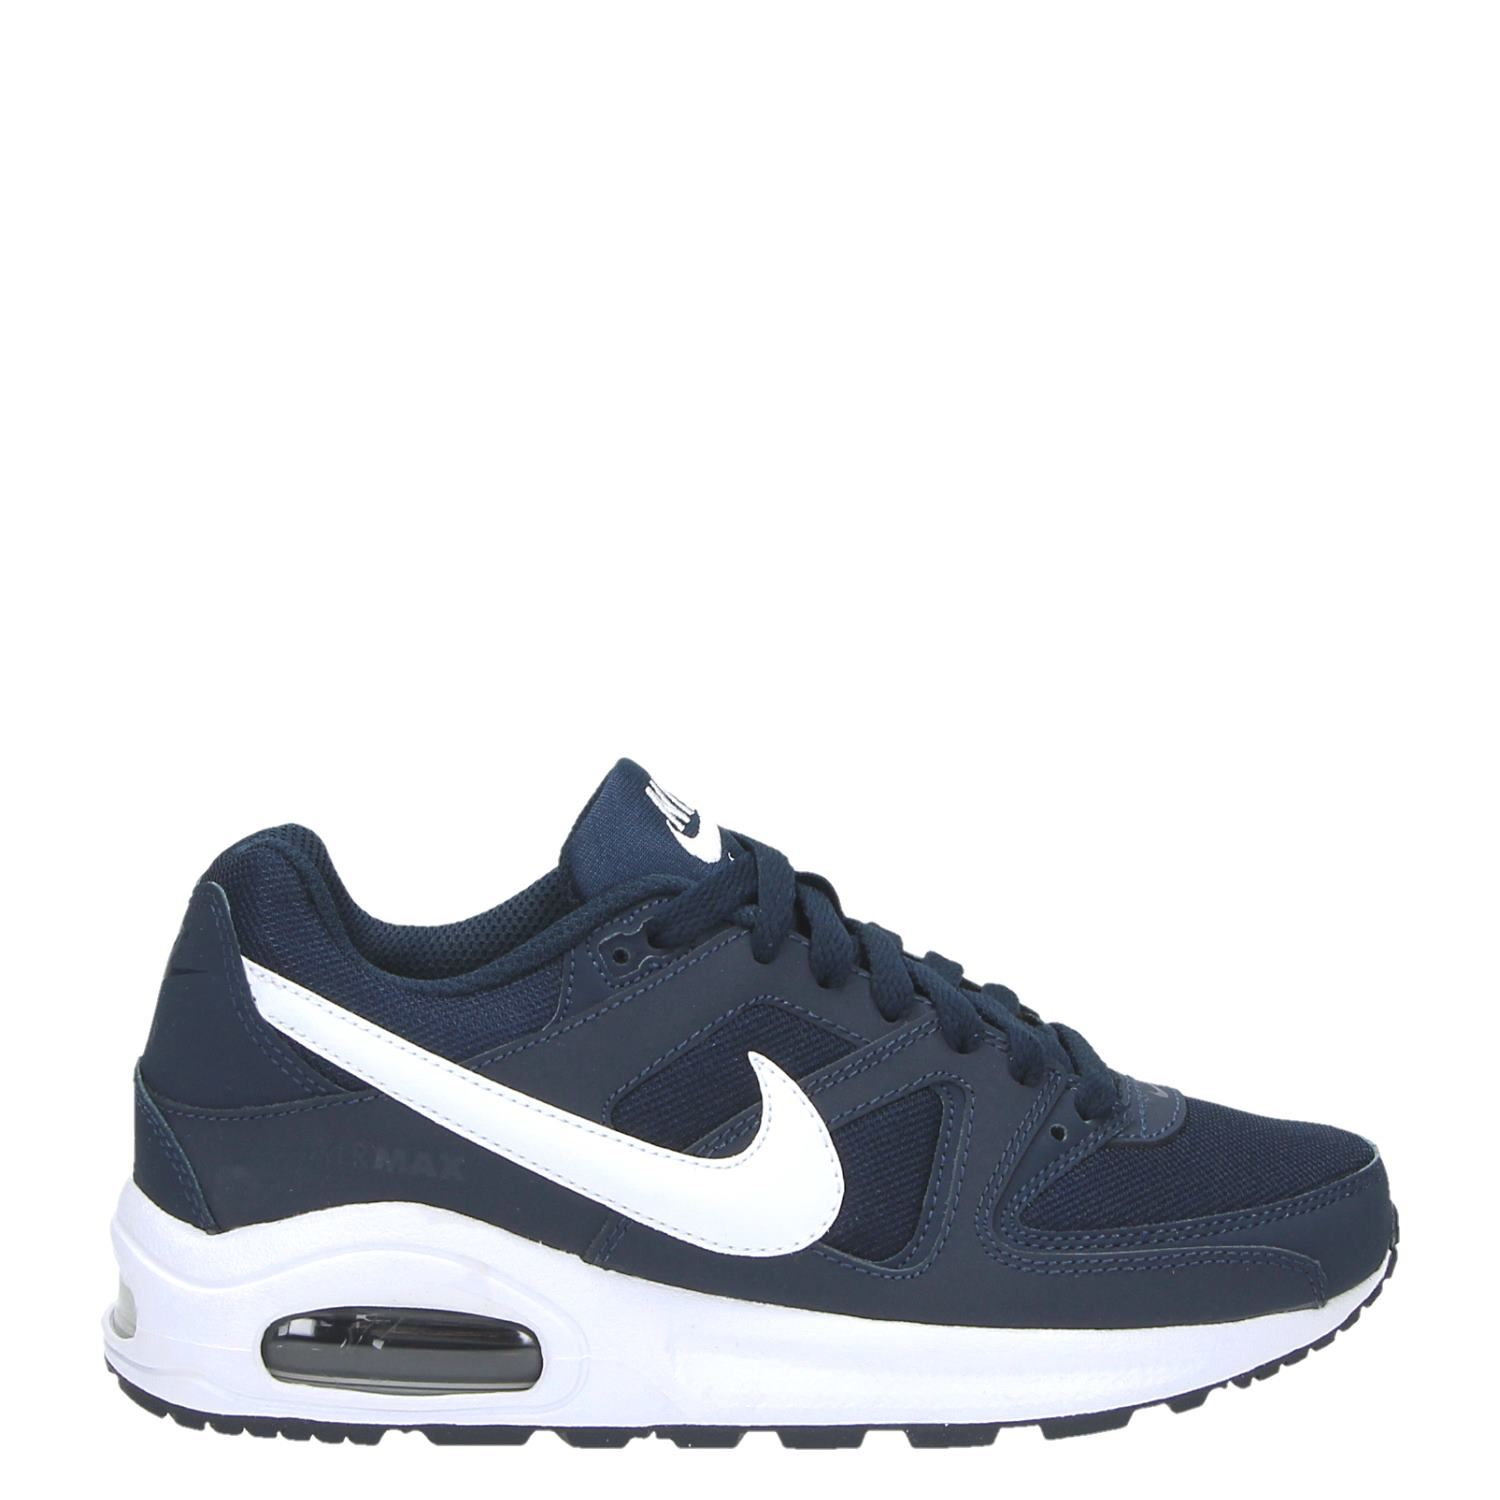 nike air max command jongens lage sneakers blauw. Black Bedroom Furniture Sets. Home Design Ideas